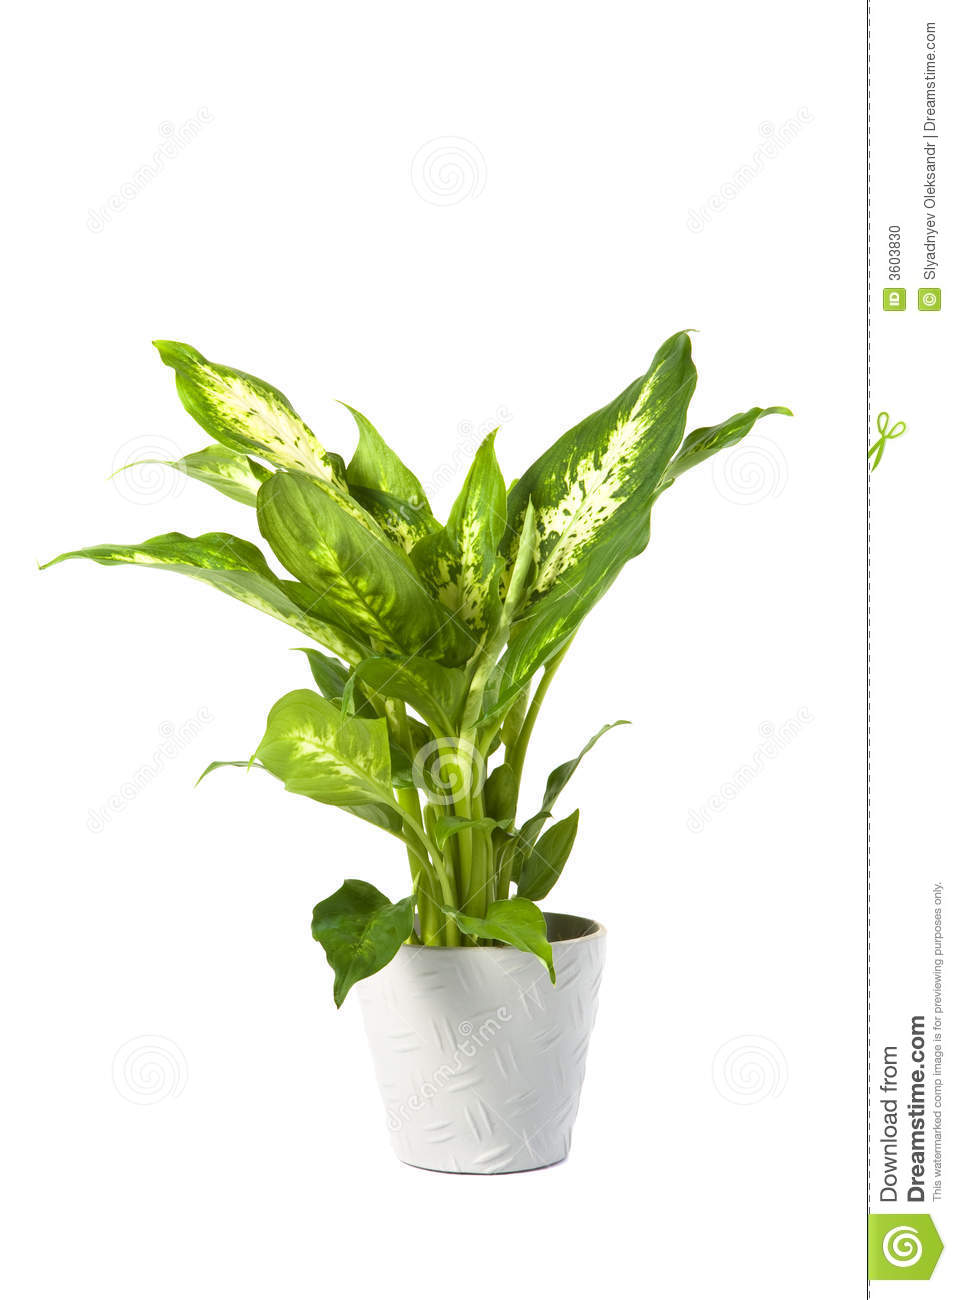 Dieffenbachia Overig Compacta Stock Photo   Image  3603830